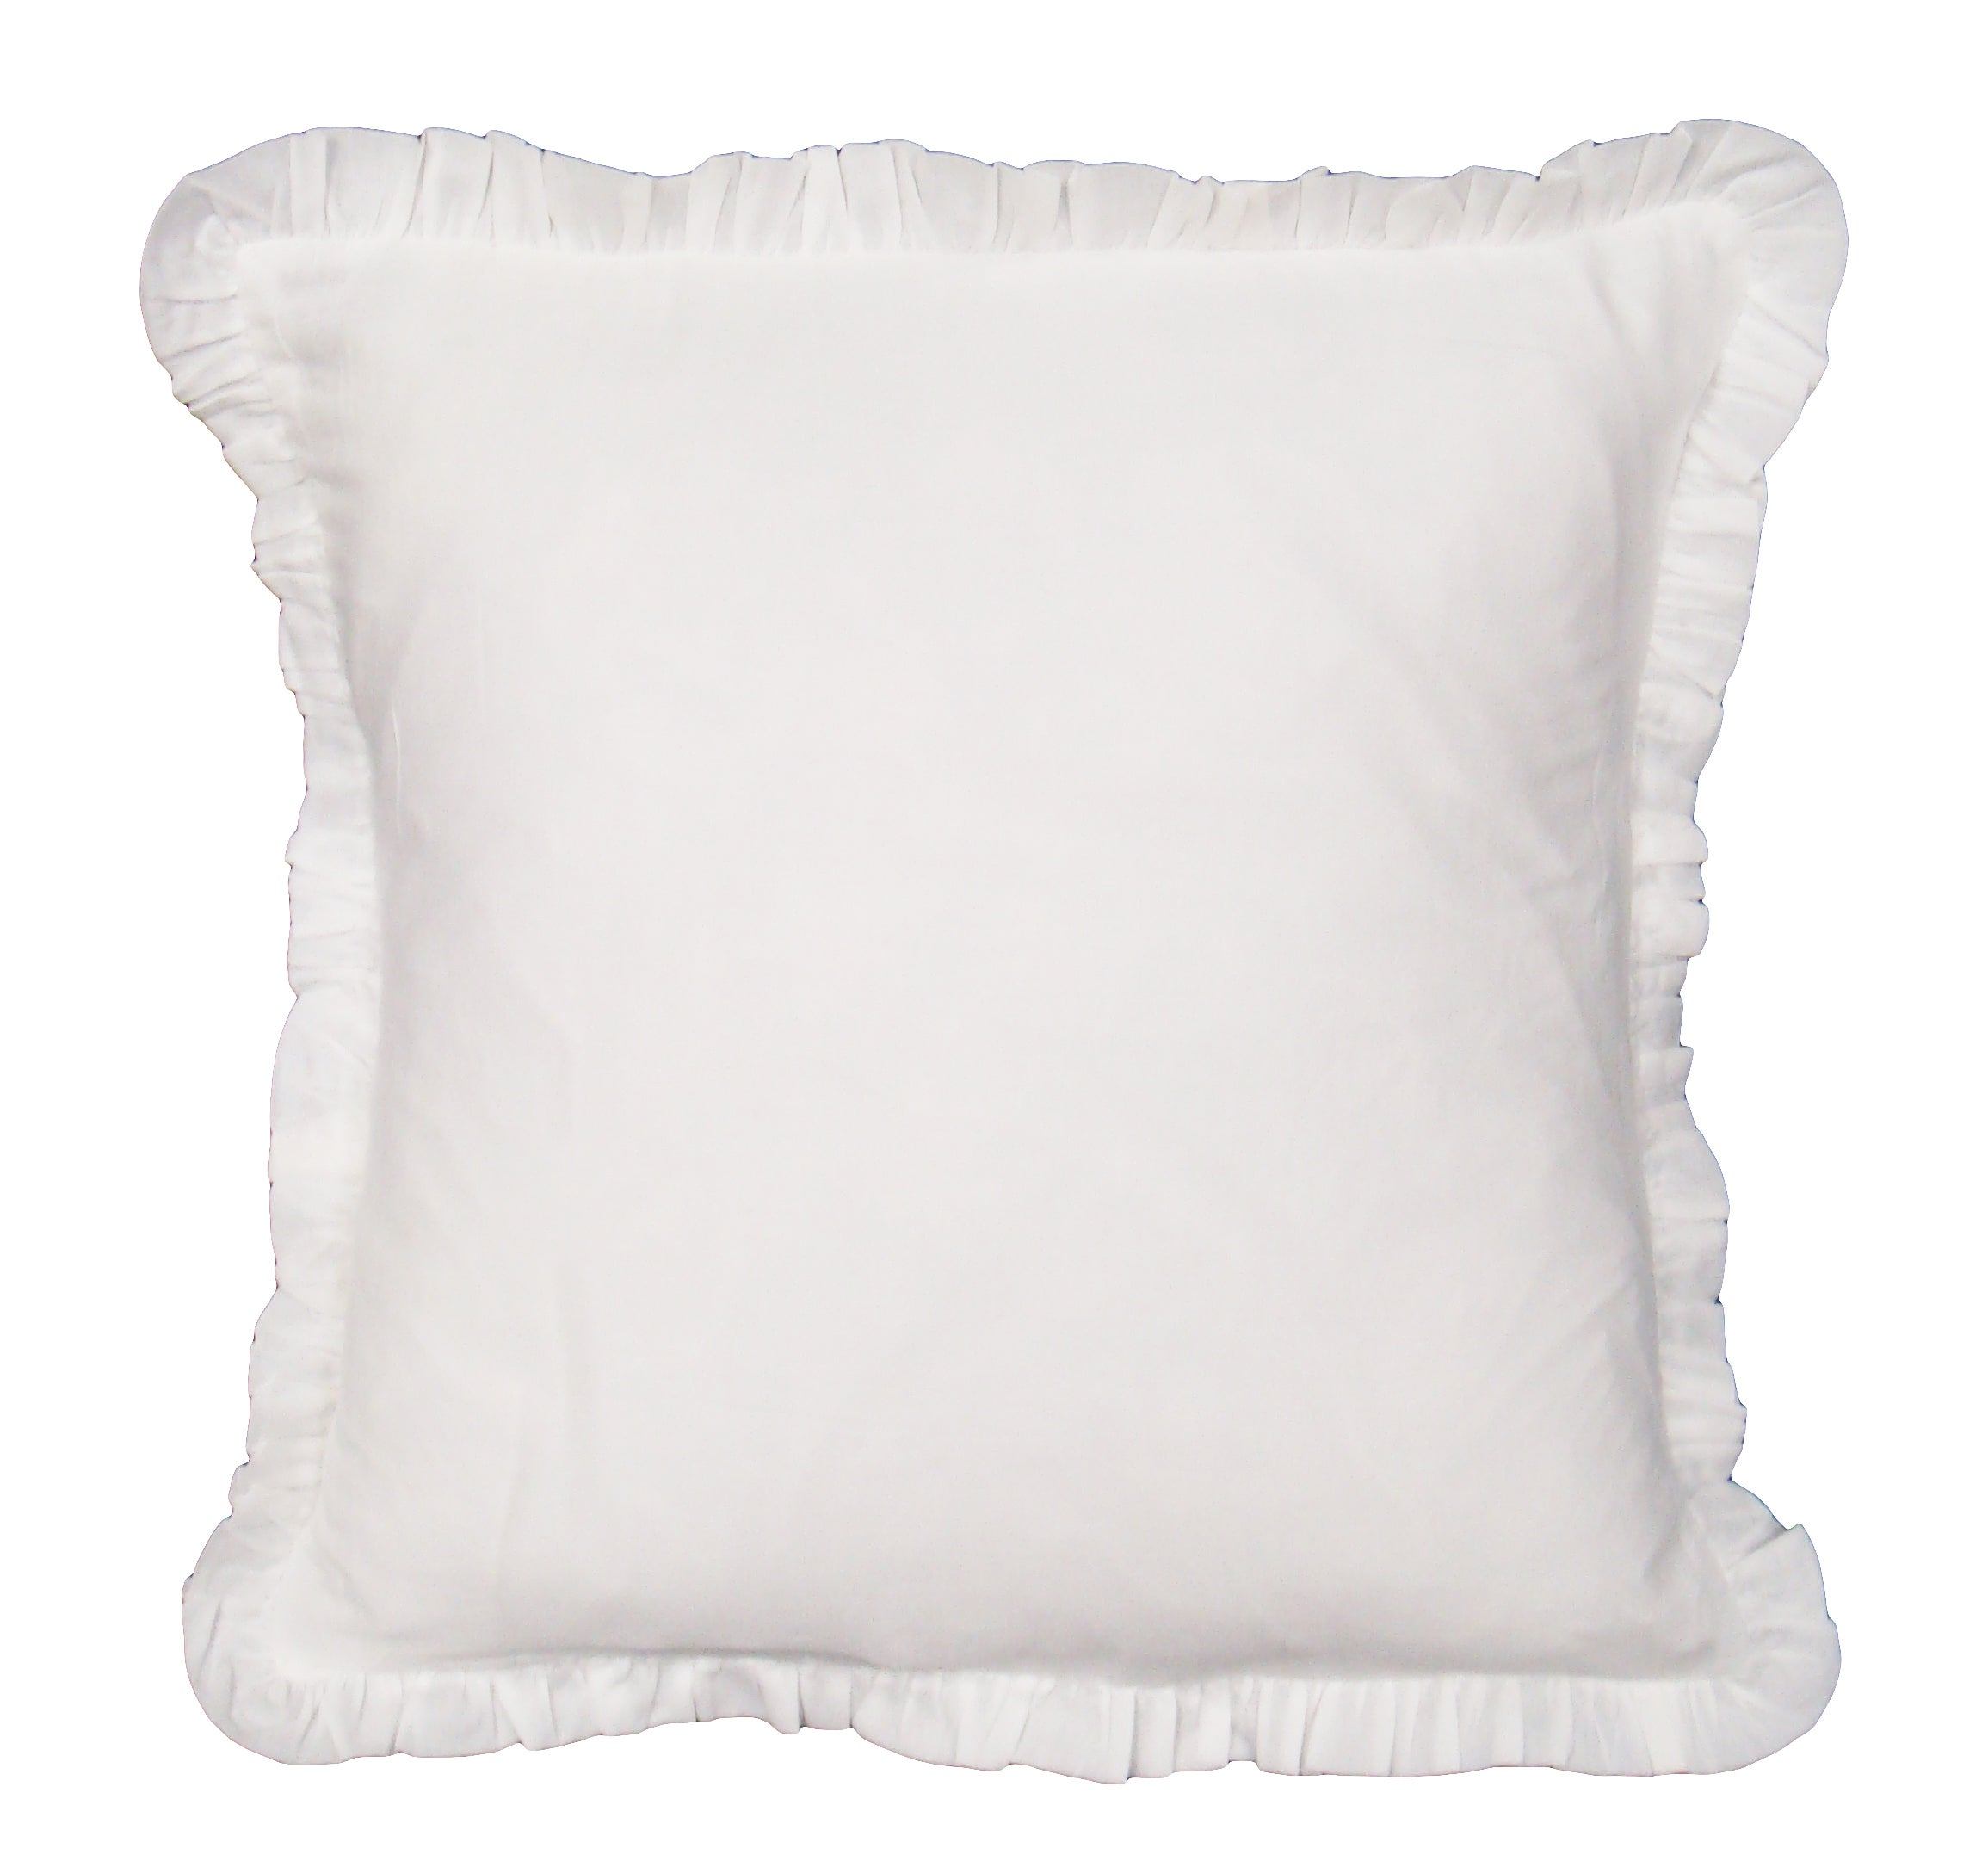 Acelin white decorative pillow 13864978 shopping great deals on cottage home - What is a throw pillow ...